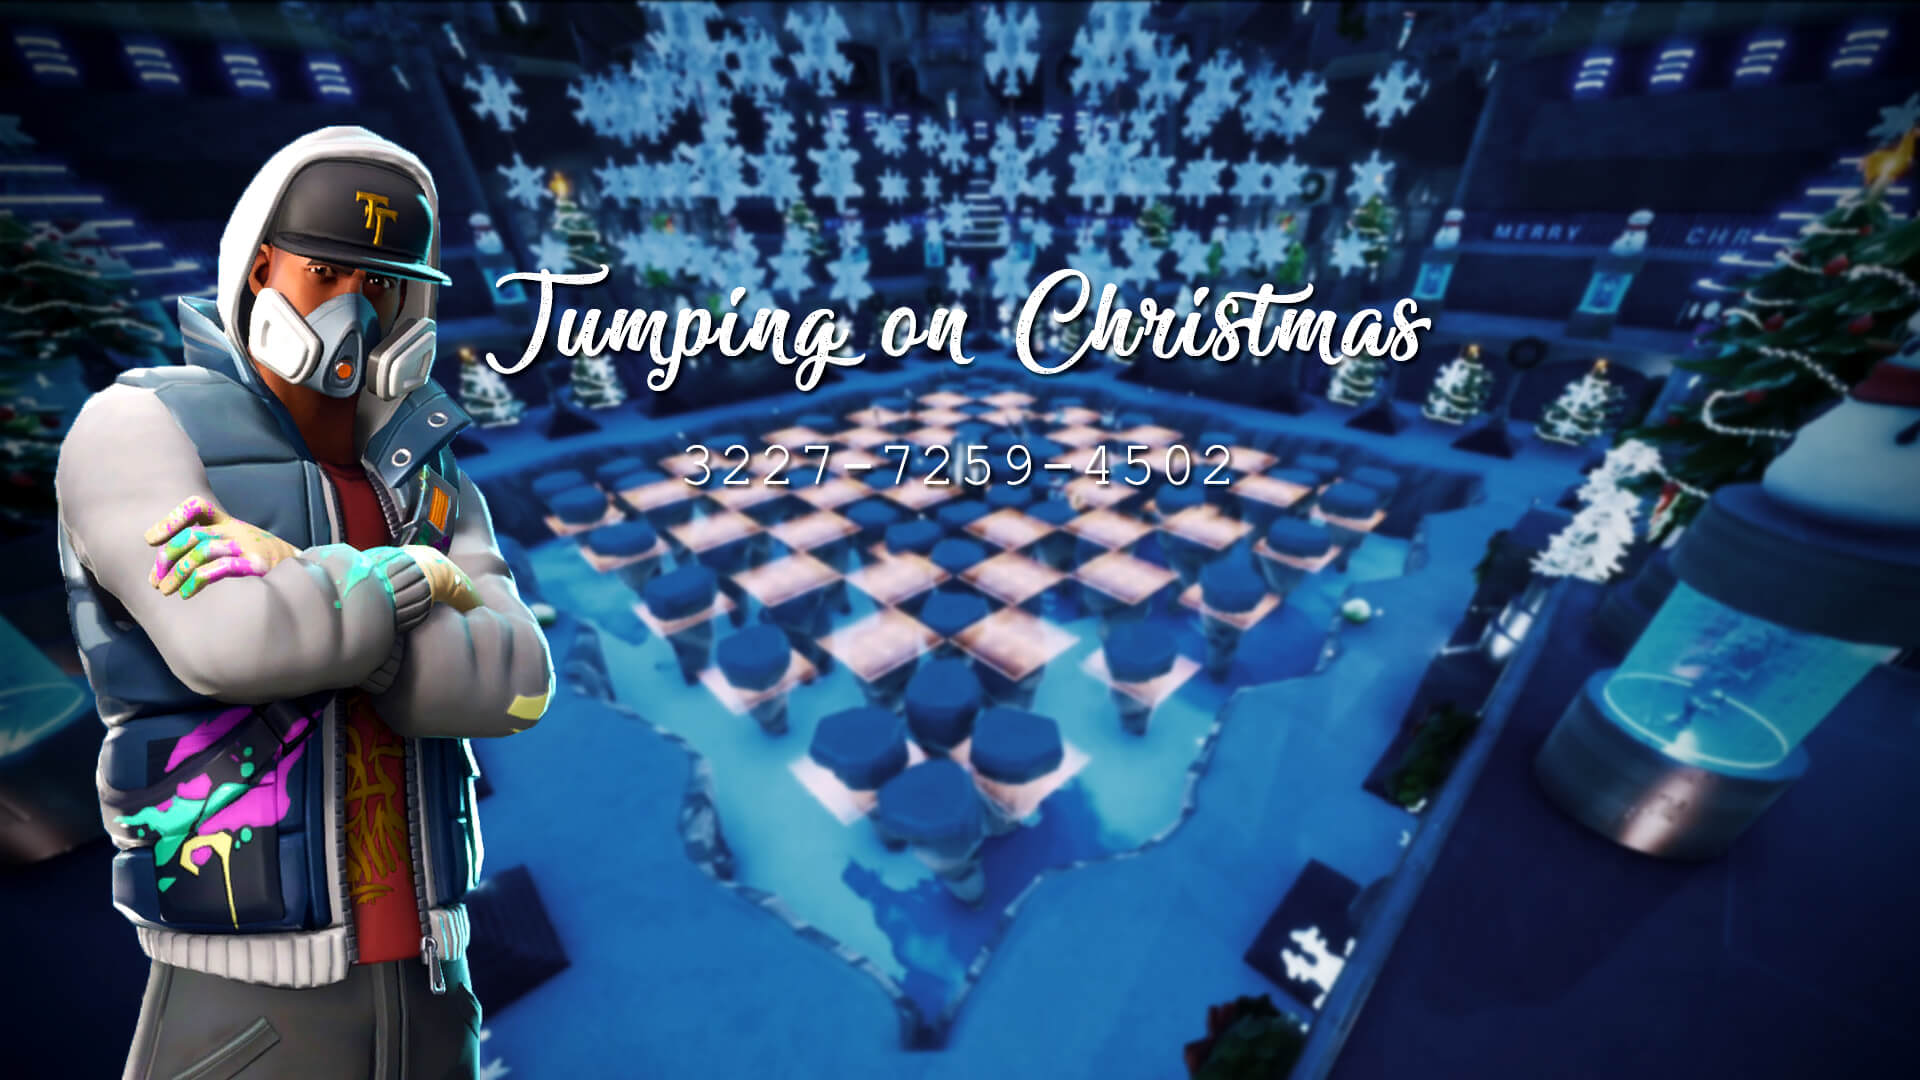 JUMPING ON CHRISTMAS